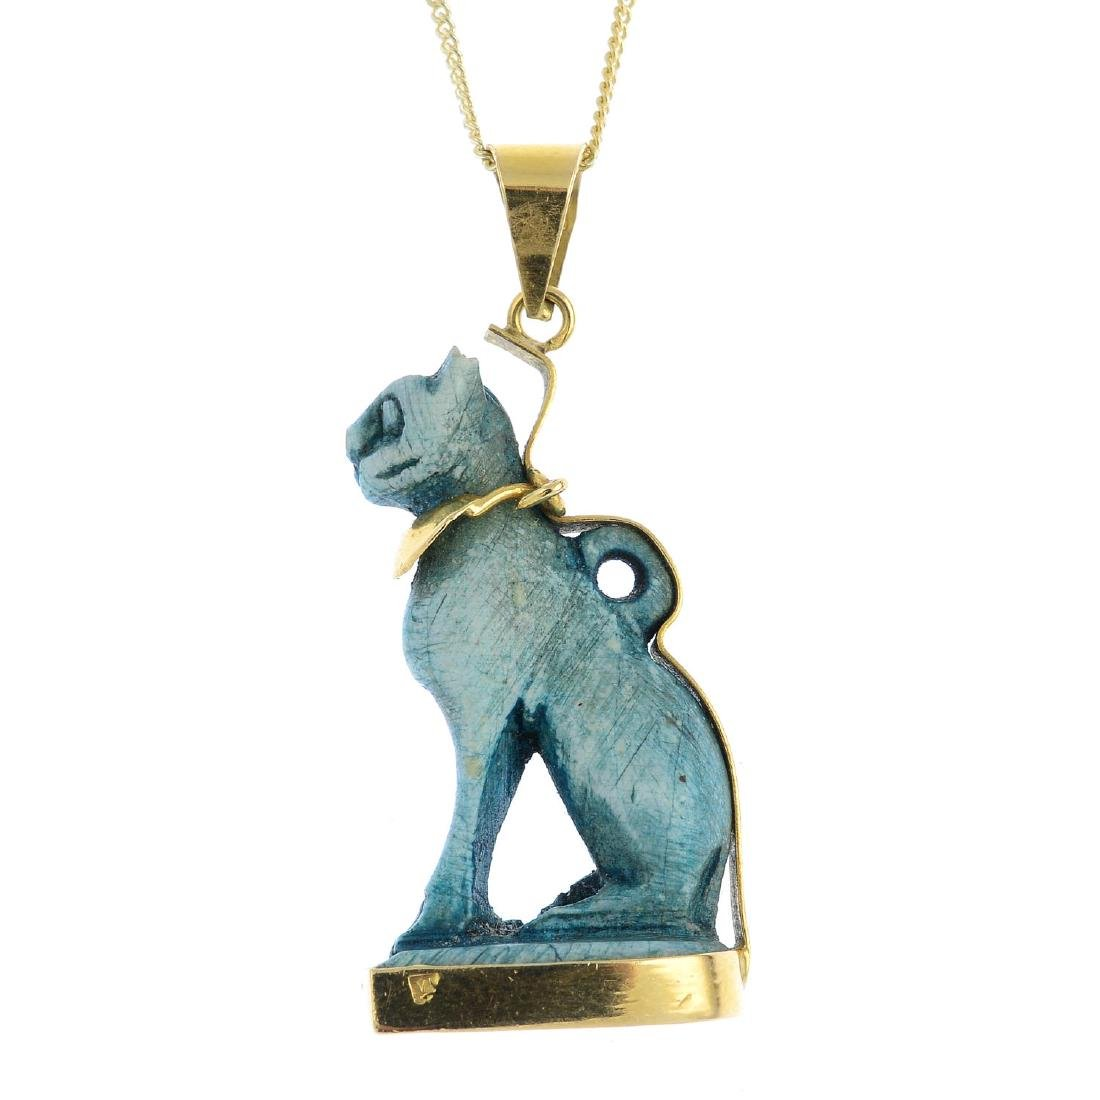 A 'Bastet' ceramic pendant. The dyed bluish-green